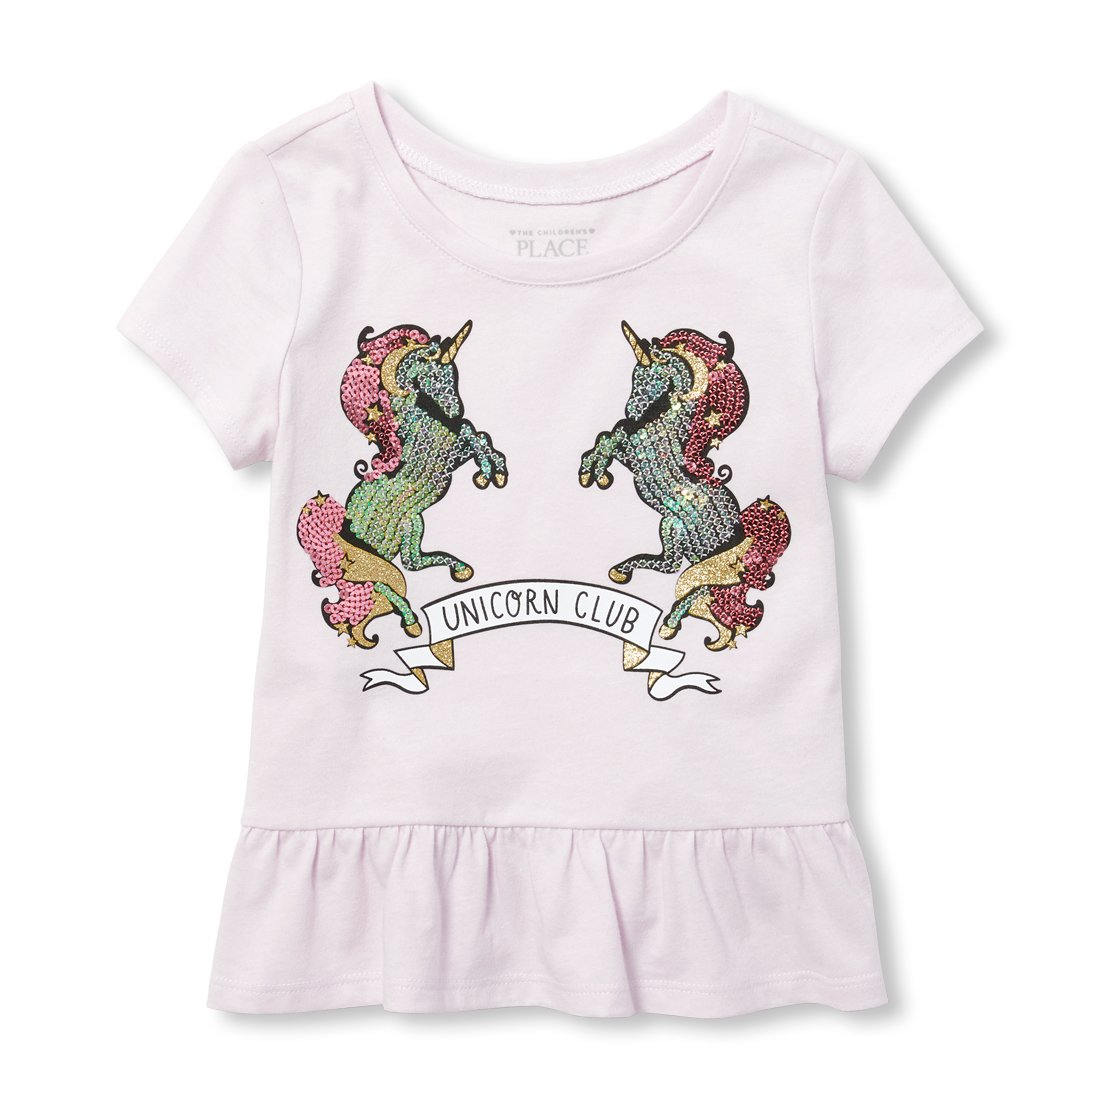 The Children's Place Baby Girls Short Sleeve Peplum Top The Children' s Place 2108838